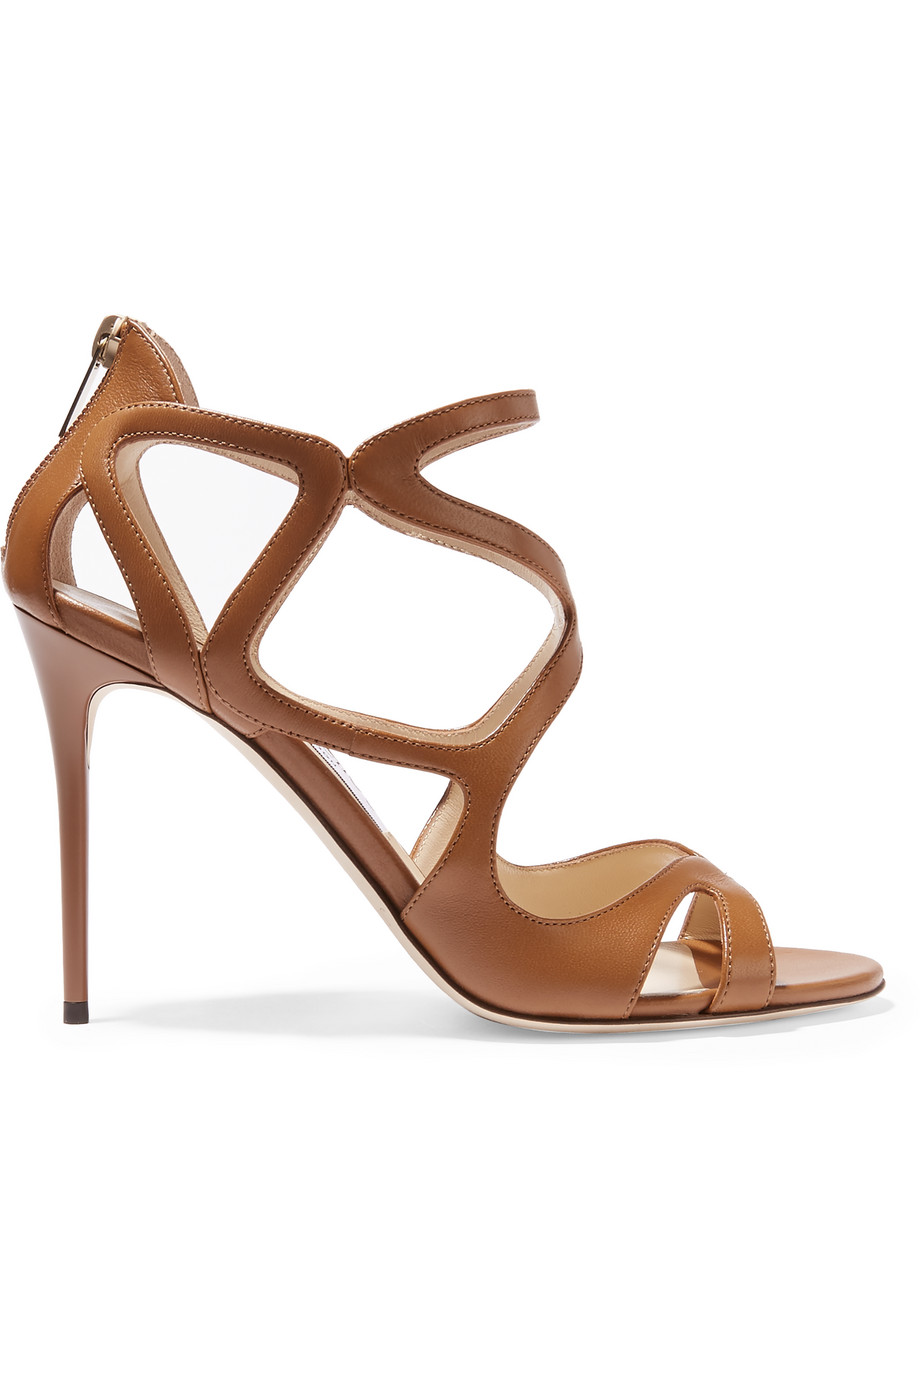 Jimmy Choo Leslie Leather Sandals, Tan, Women's US Size: 7, Size: 37.5